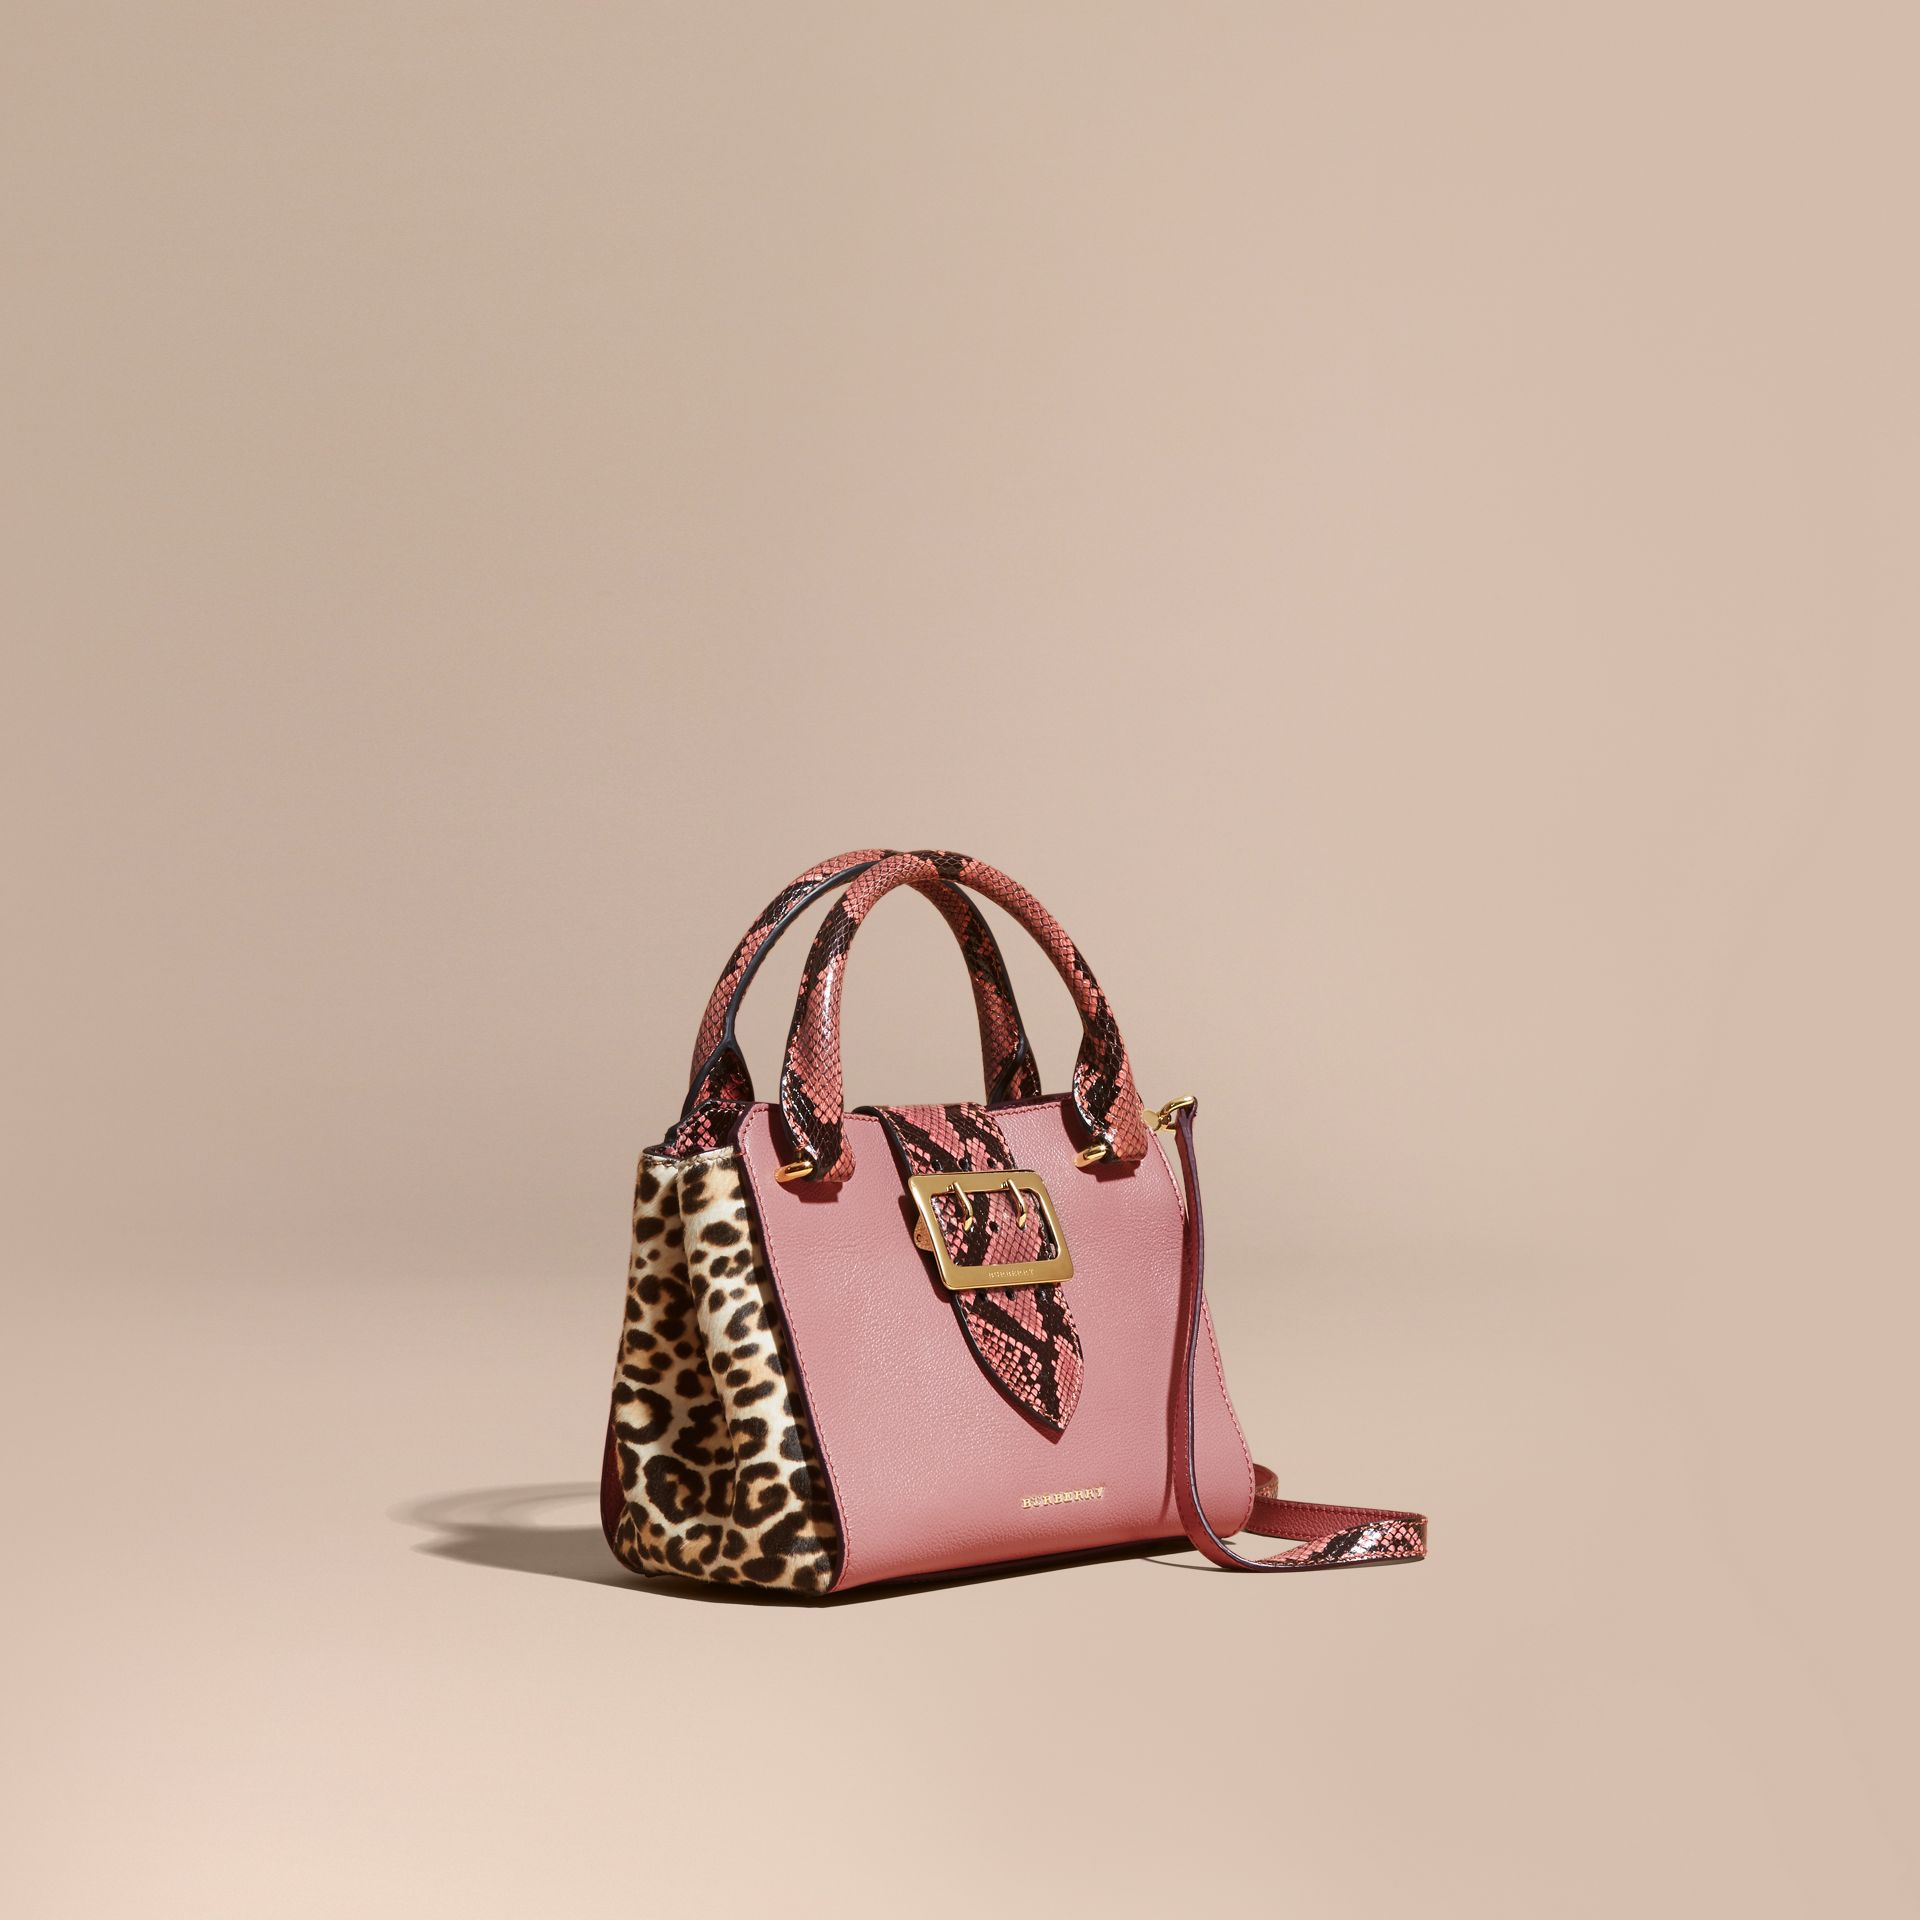 Dusty pink The Small Buckle Tote in Leather and  Leopard-print Calfskin Dusty Pink - gallery image 1